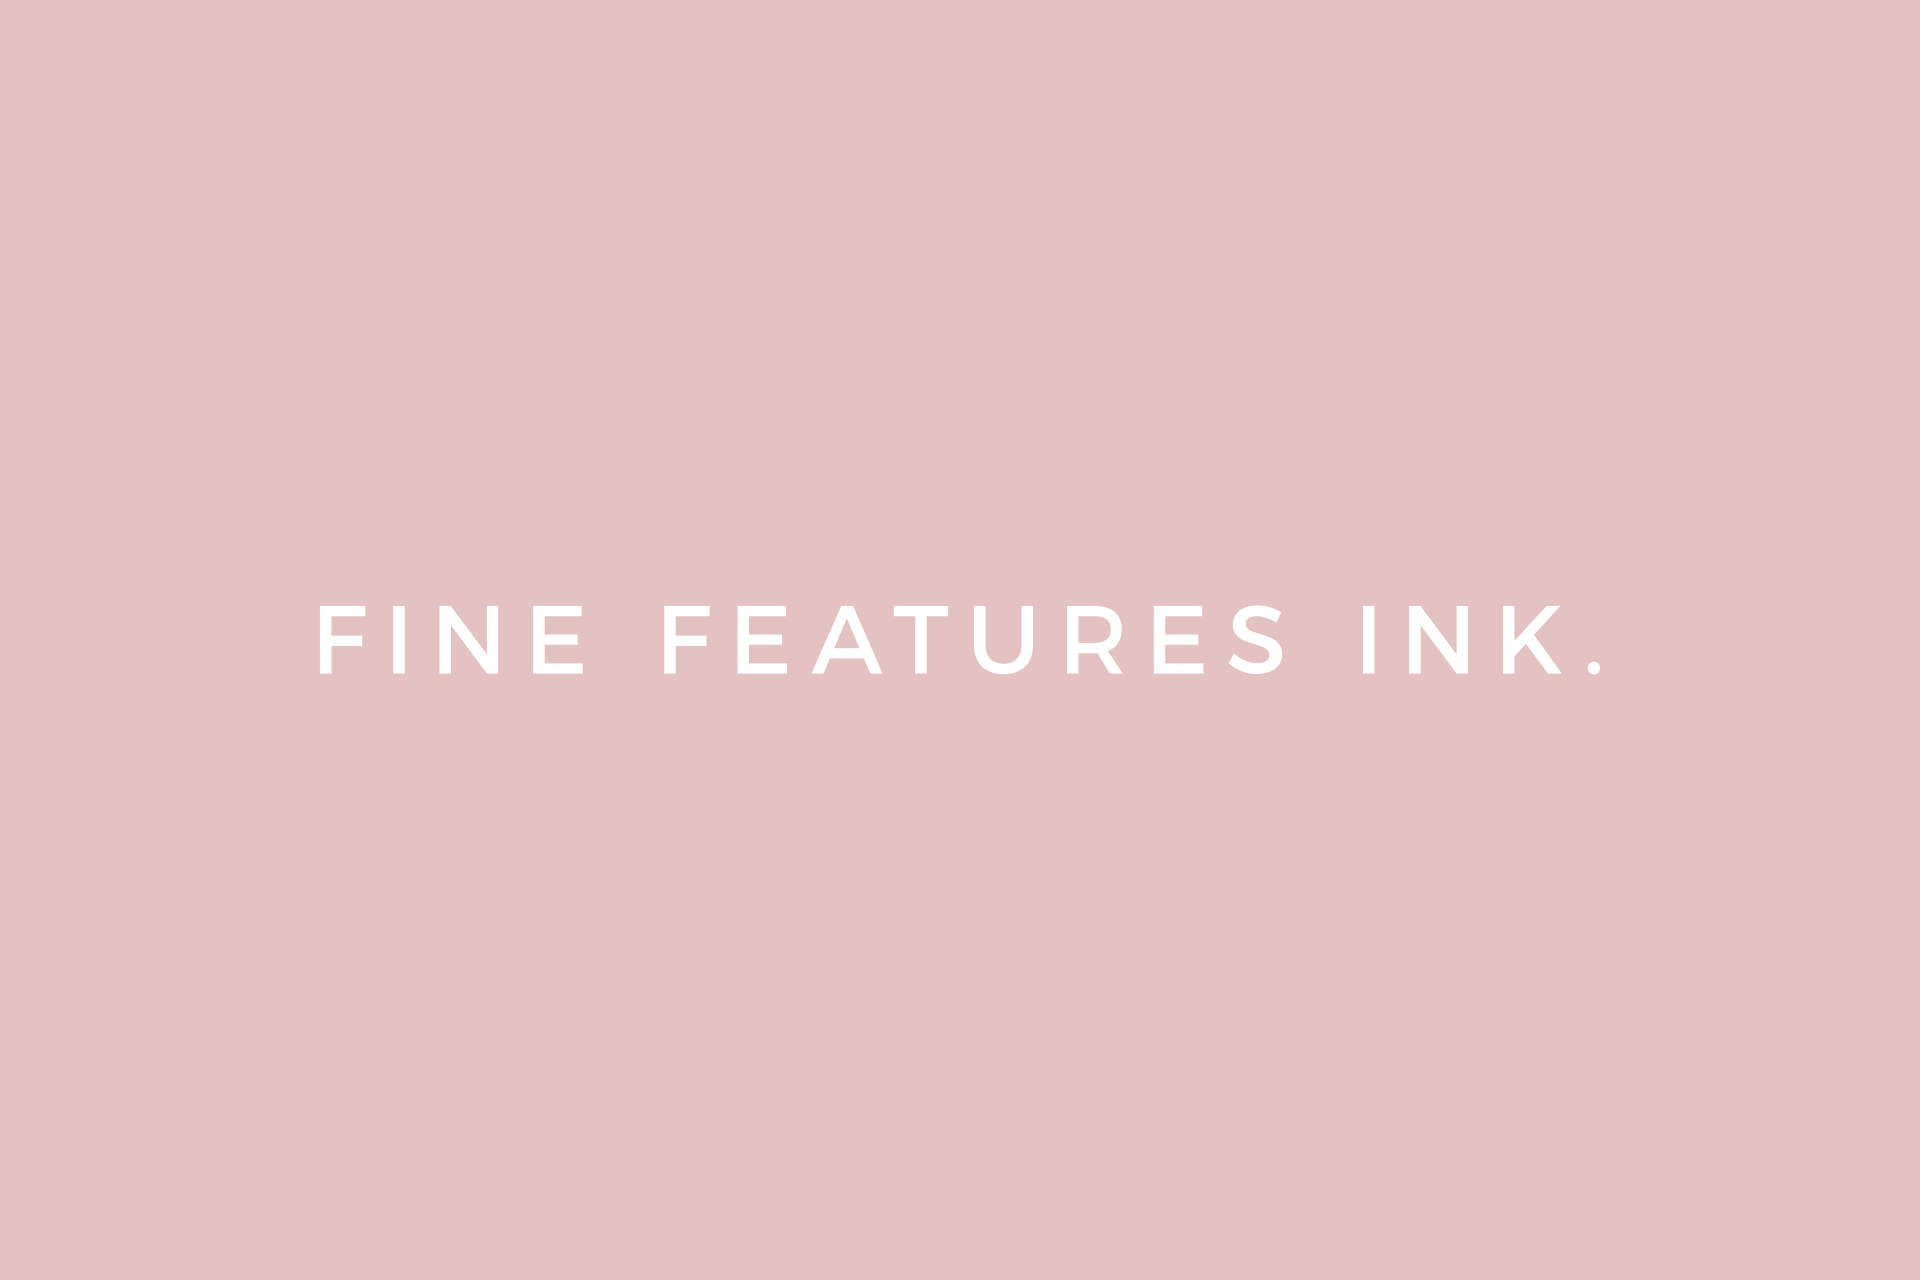 Fine Features Ink